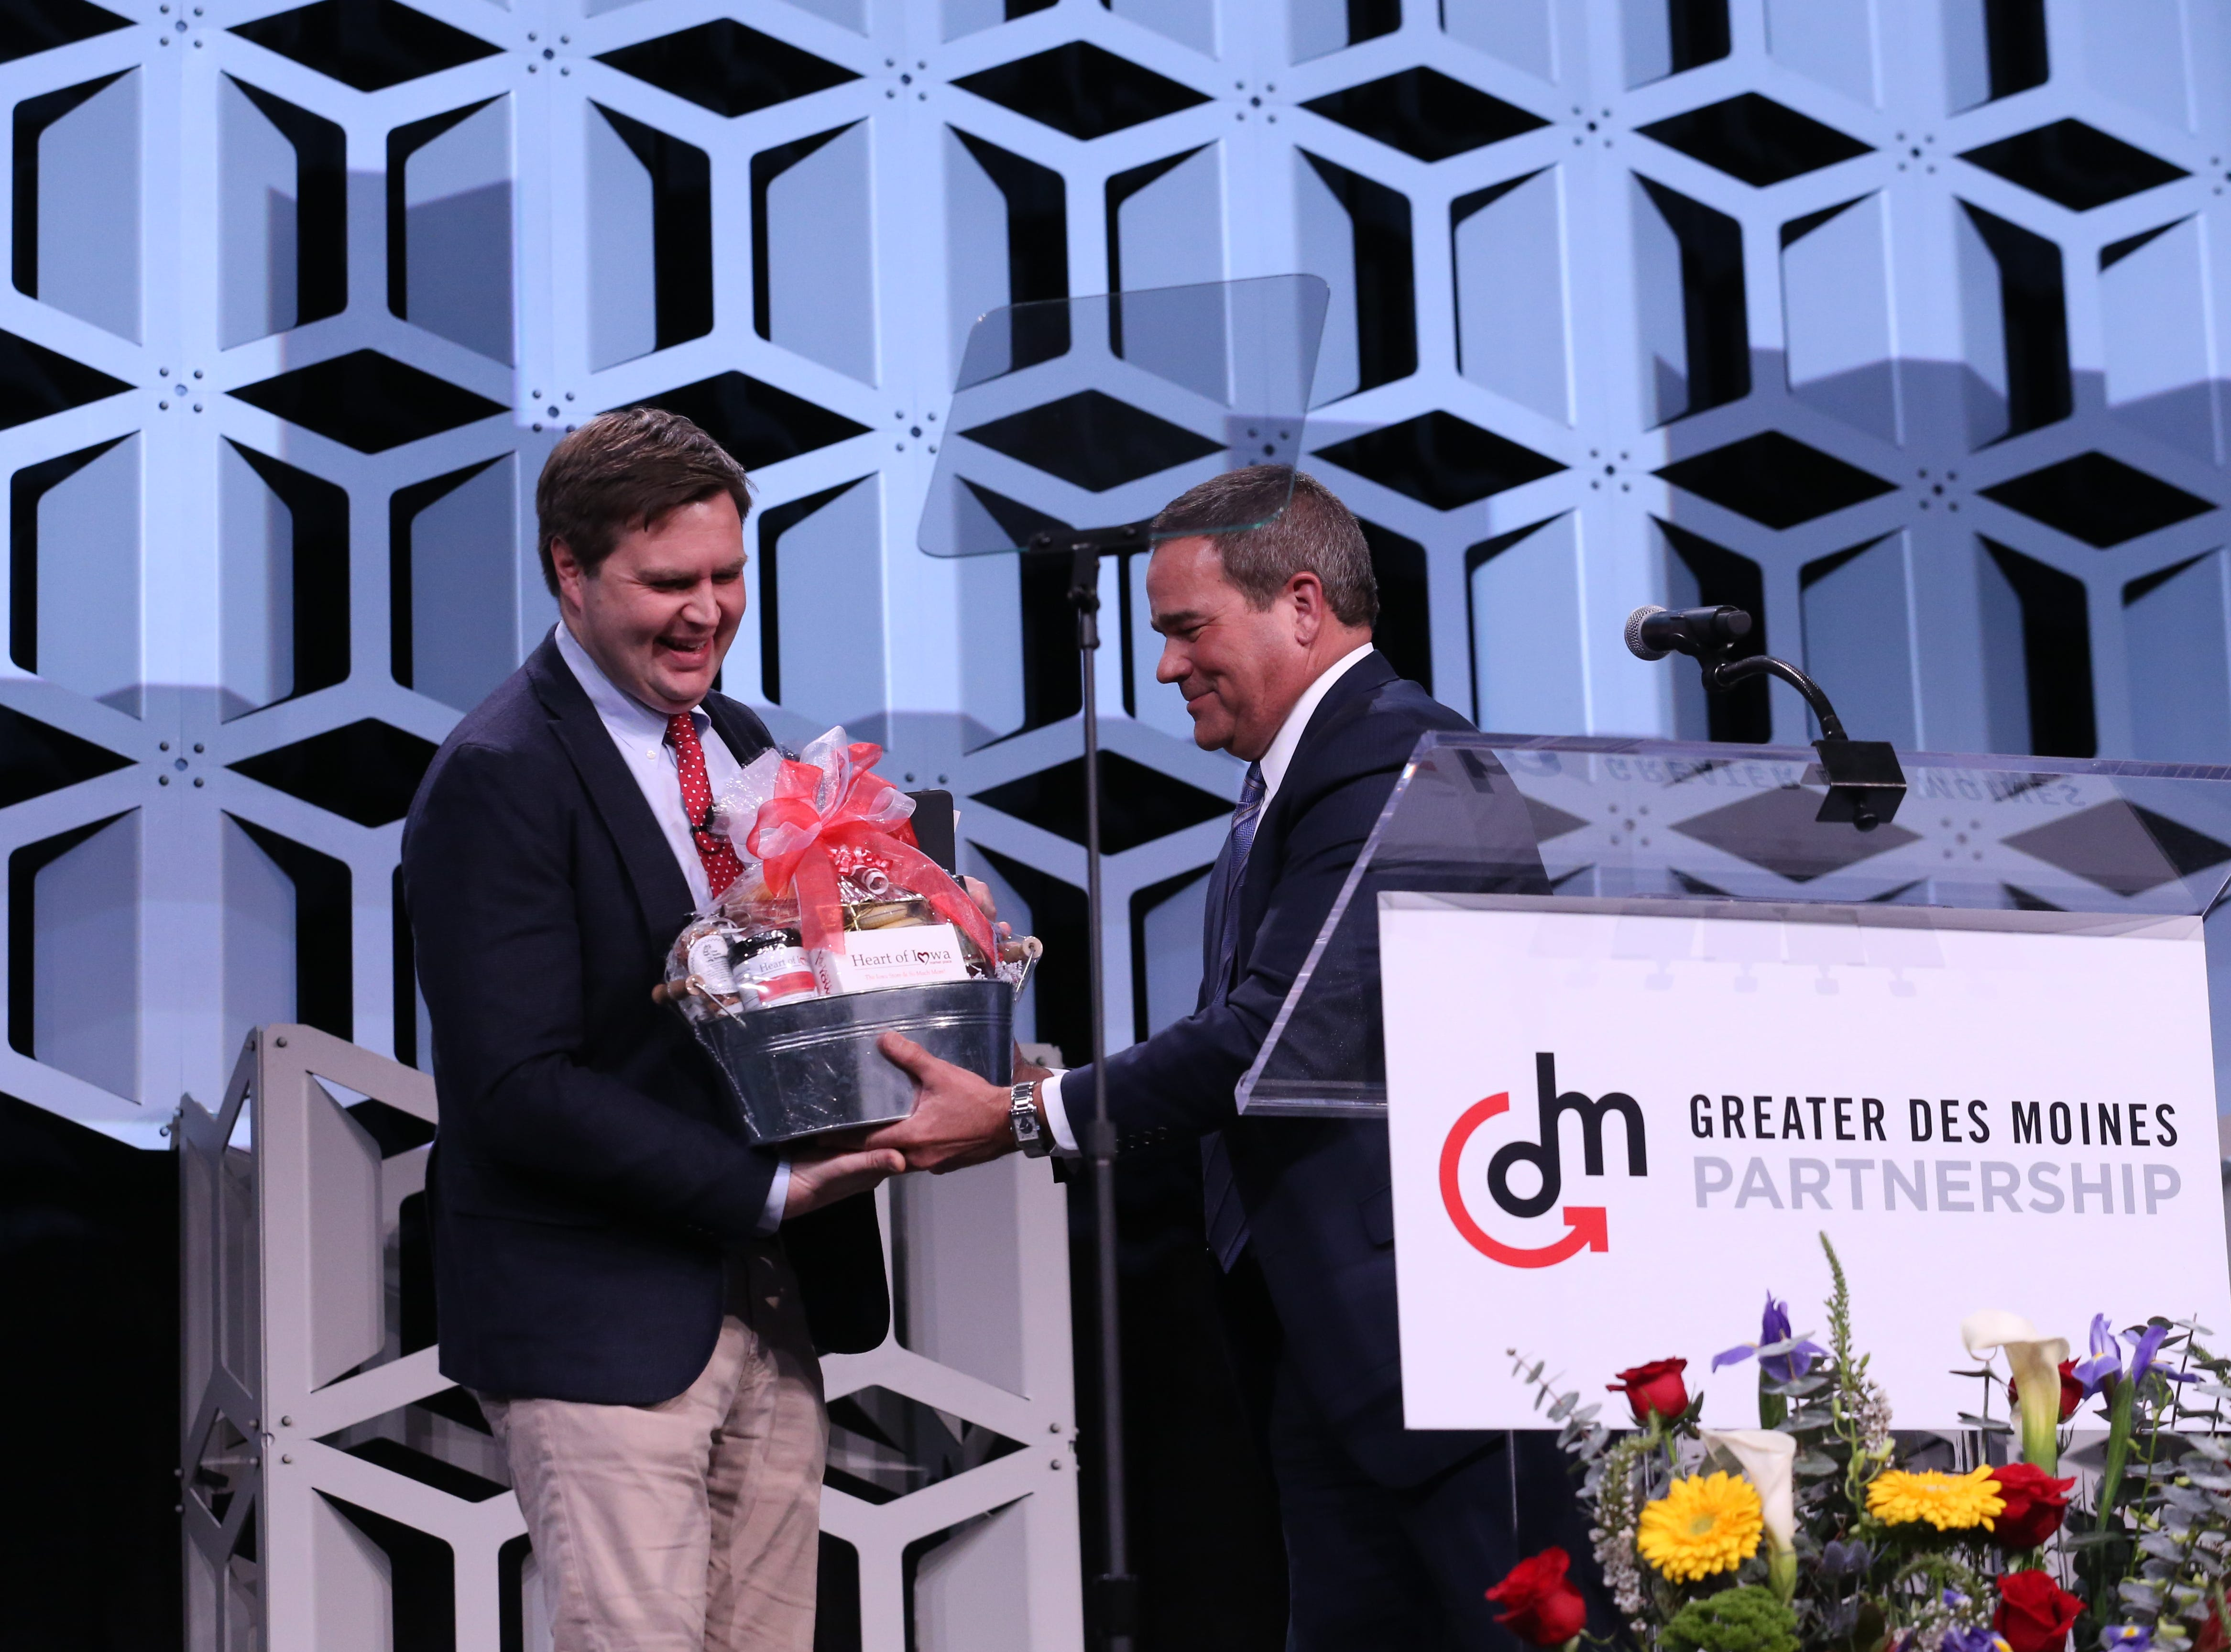 Partnership 2018 Board Chair Dan Houston presents a gift to J.D. Vance. J.D. Vance, the event's keynote speaker.  receives a gift at the Partnership's Annual Dinner on January 17, 2019.